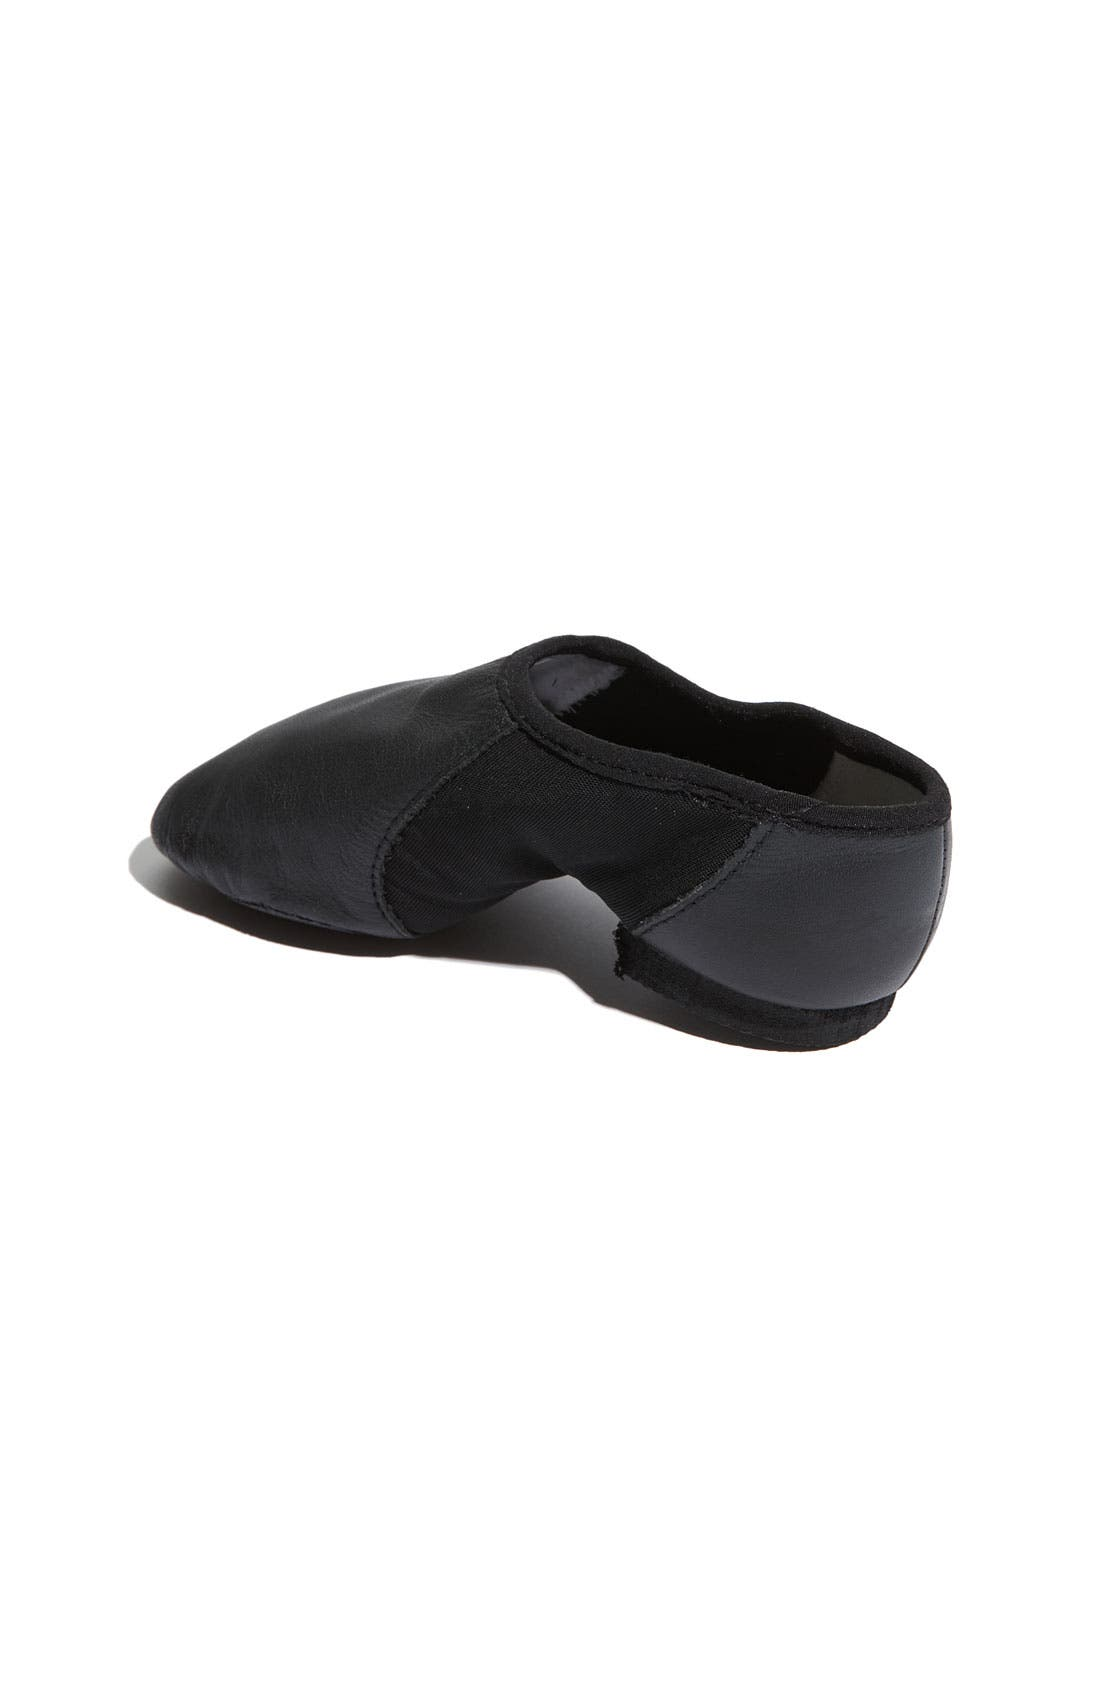 Alternate Image 2  - Bloch 'Neo Flex' Jazz Shoe (Toddler & Little Kid)